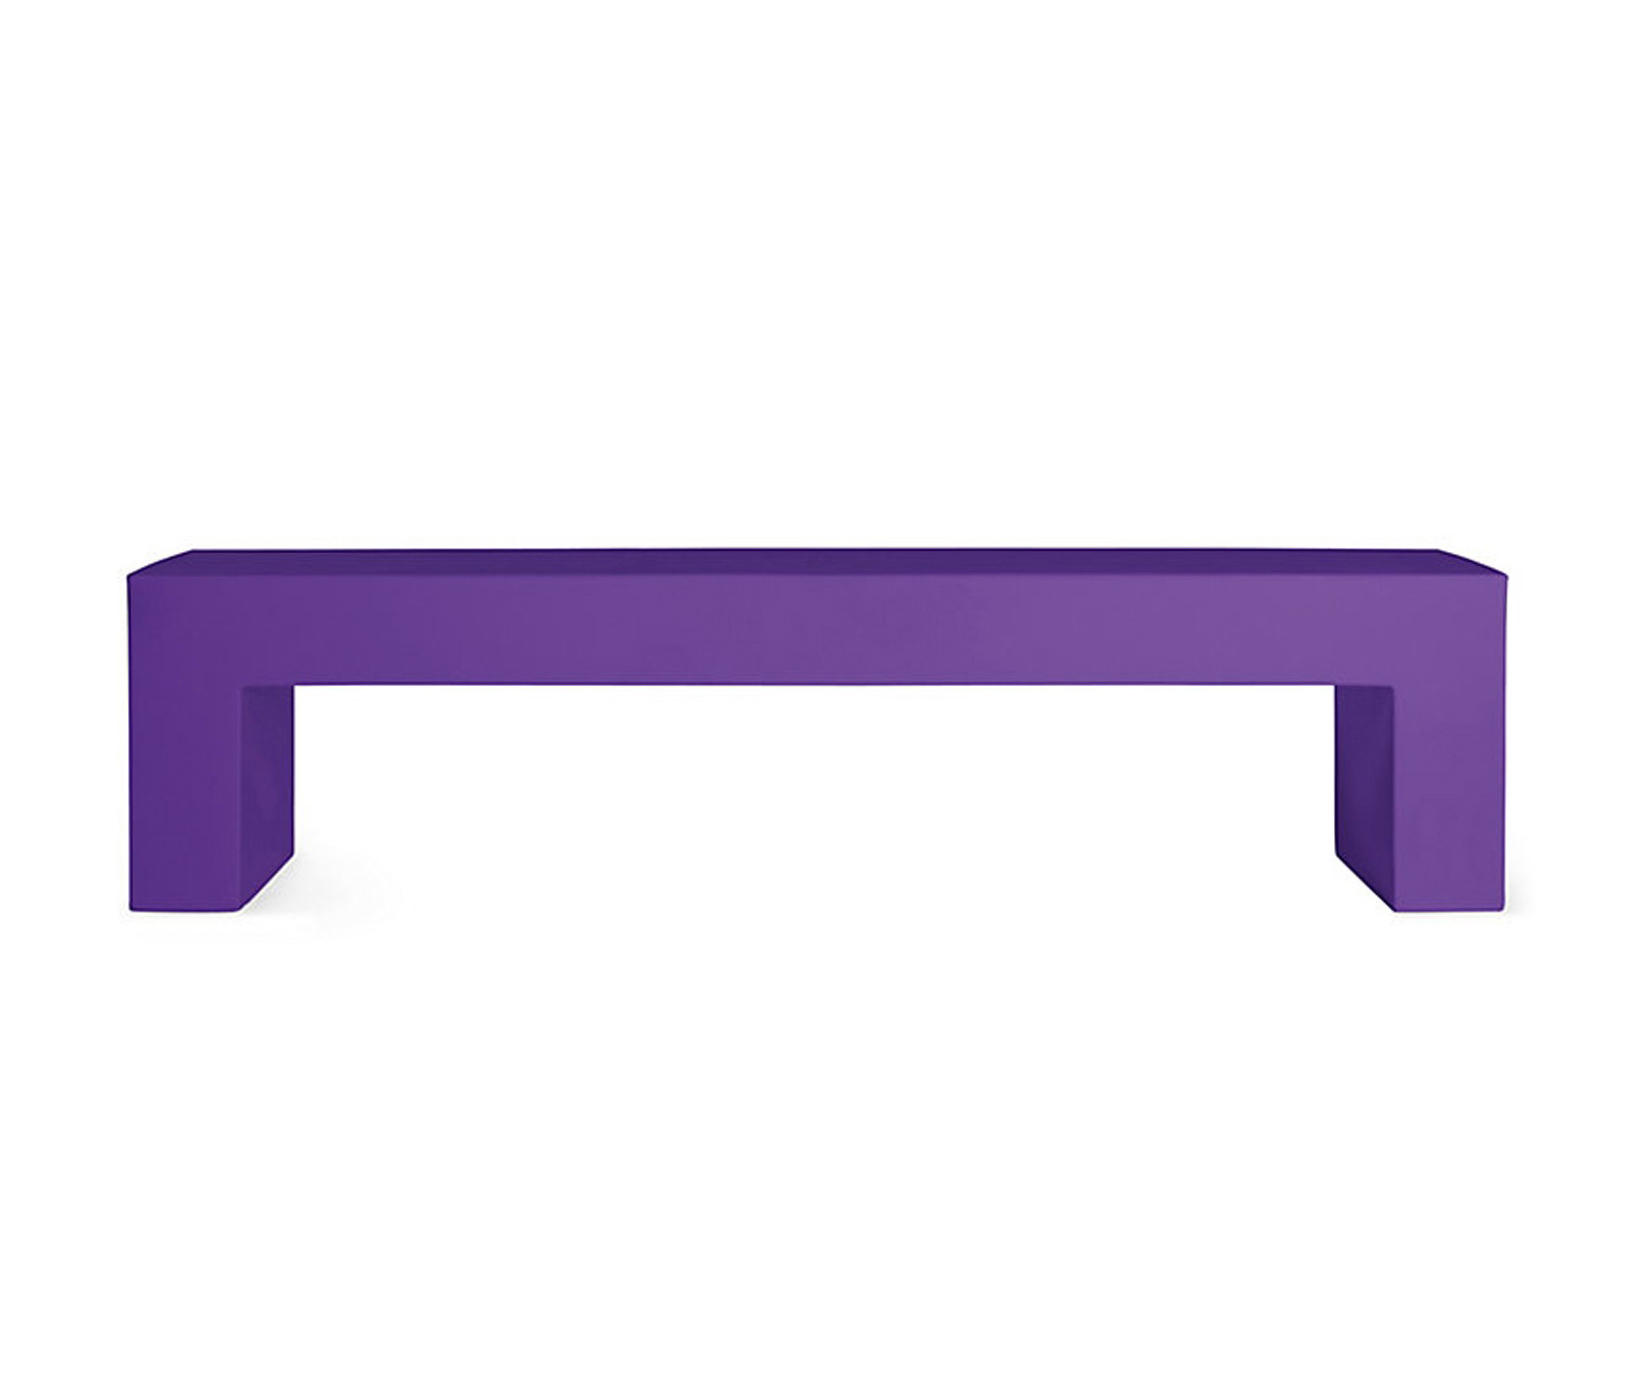 Terrific Vignelli Big Bench Model 1031 Purple Architonic Ncnpc Chair Design For Home Ncnpcorg